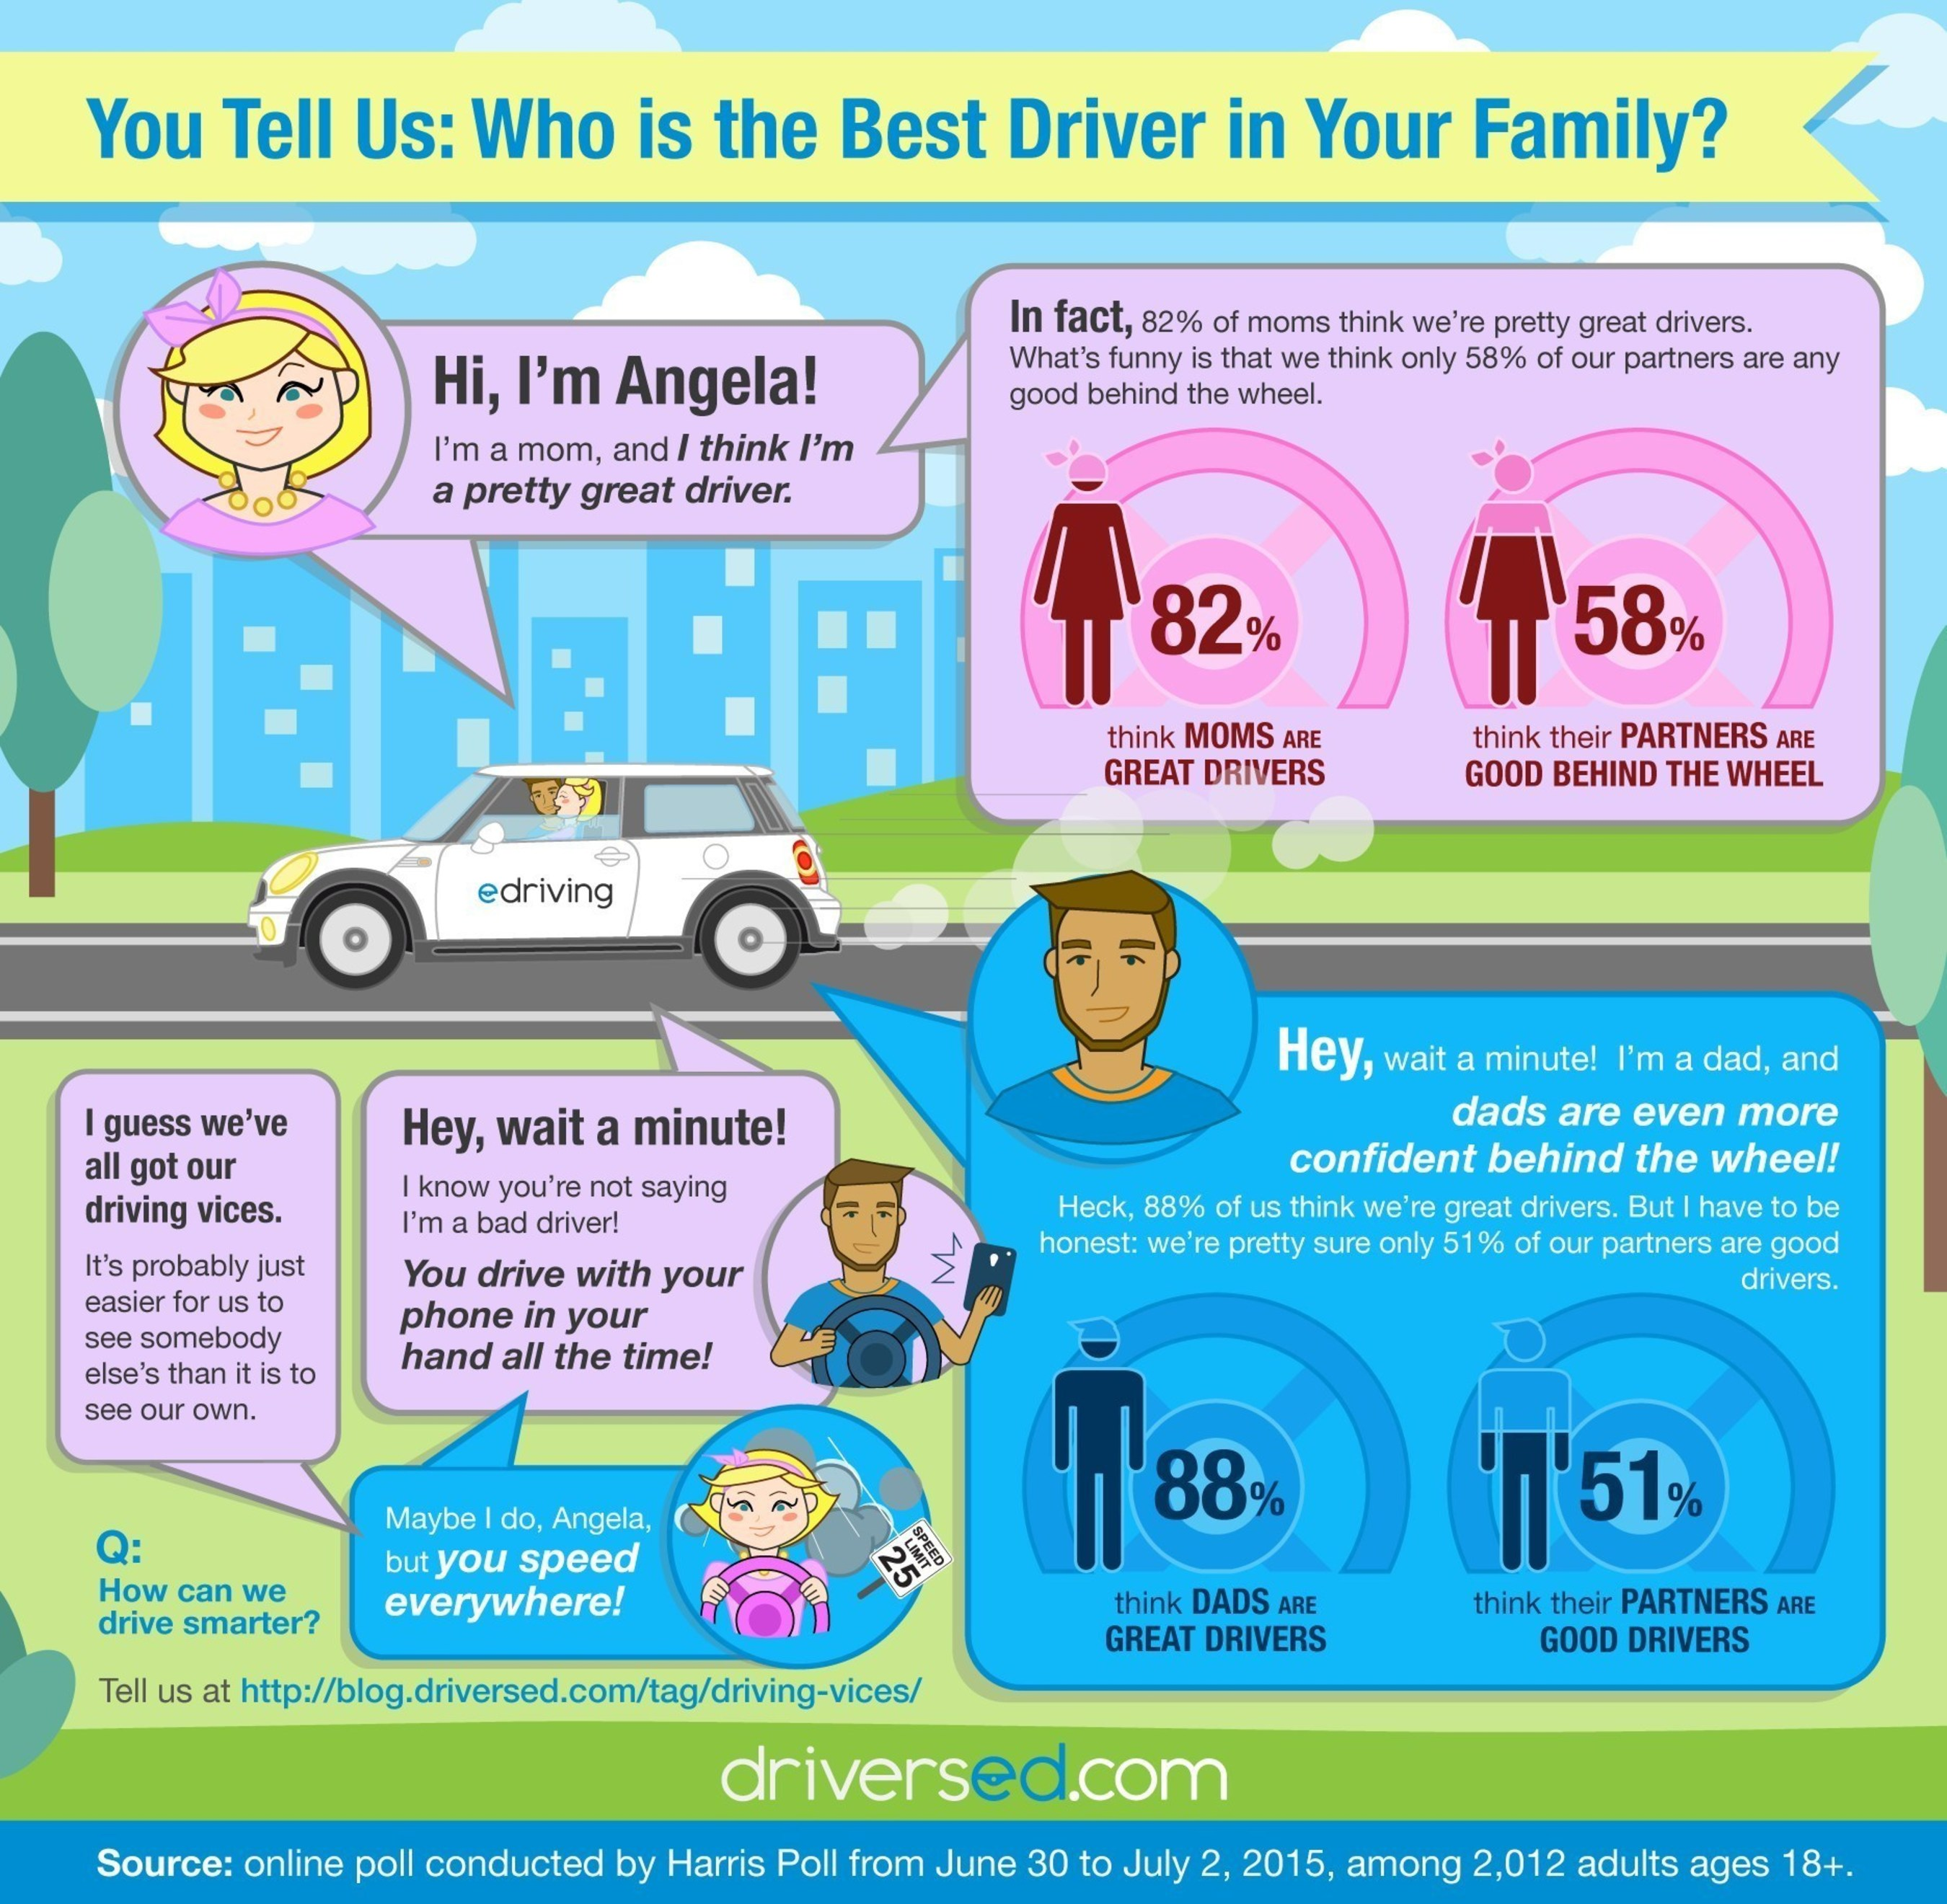 Who is the best driver in your family? Most Americans consider themselves to be much better drivers than they do their kids, their parents, and even their spouses.  Men had the largest 'superiority complex', with 88% saying they were very or fairly good drivers vs. 51% rating their partners similarly.  The gap was a bit smaller for women -- 82% to 58% -- but still noticeable.  In reality, we all have our driving vices we can likely improve by slowing down, avoiding distractions, some additional training...